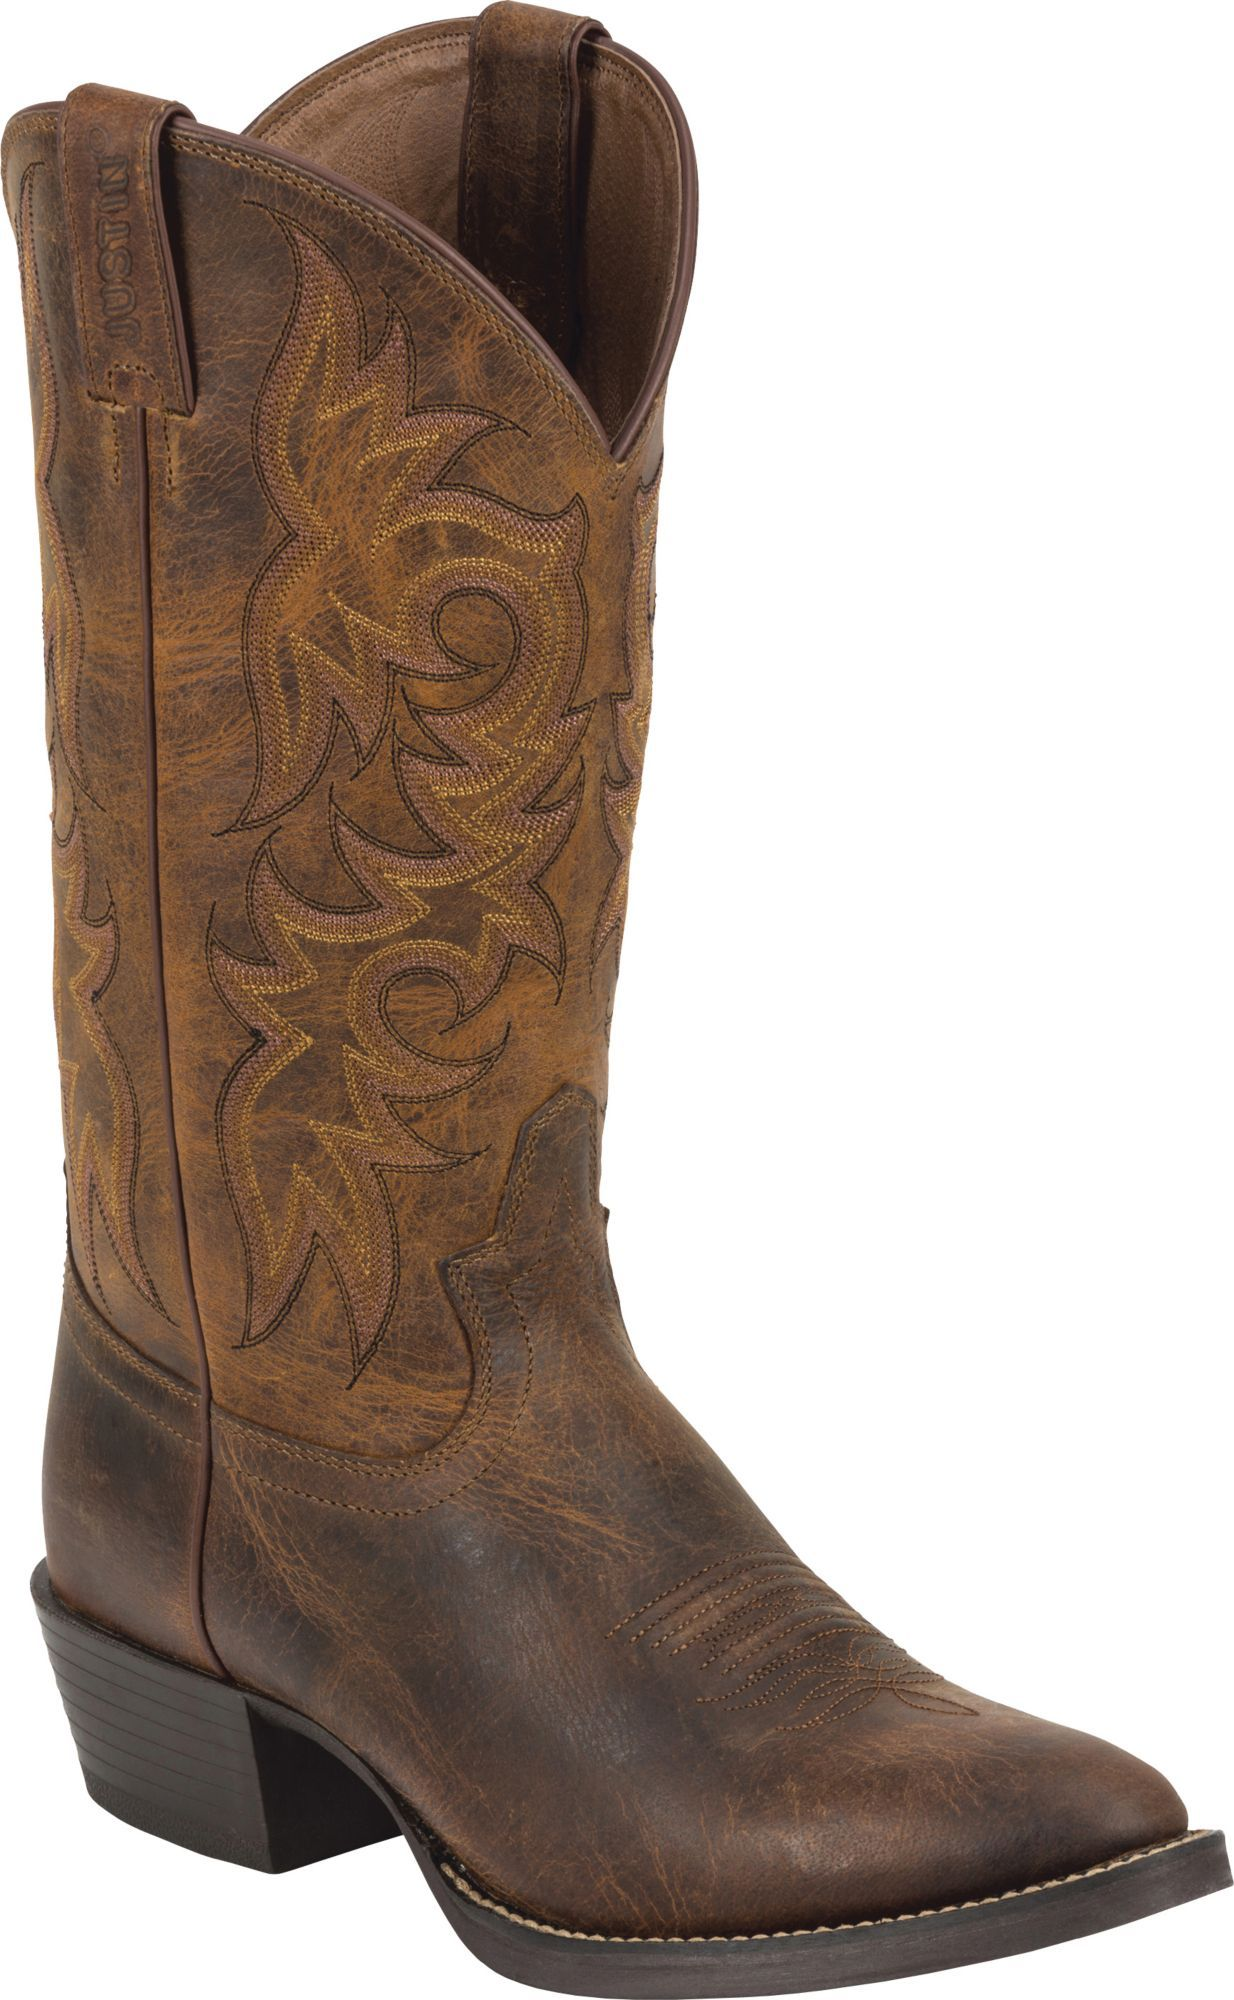 Rugged Cowhide Western Boots